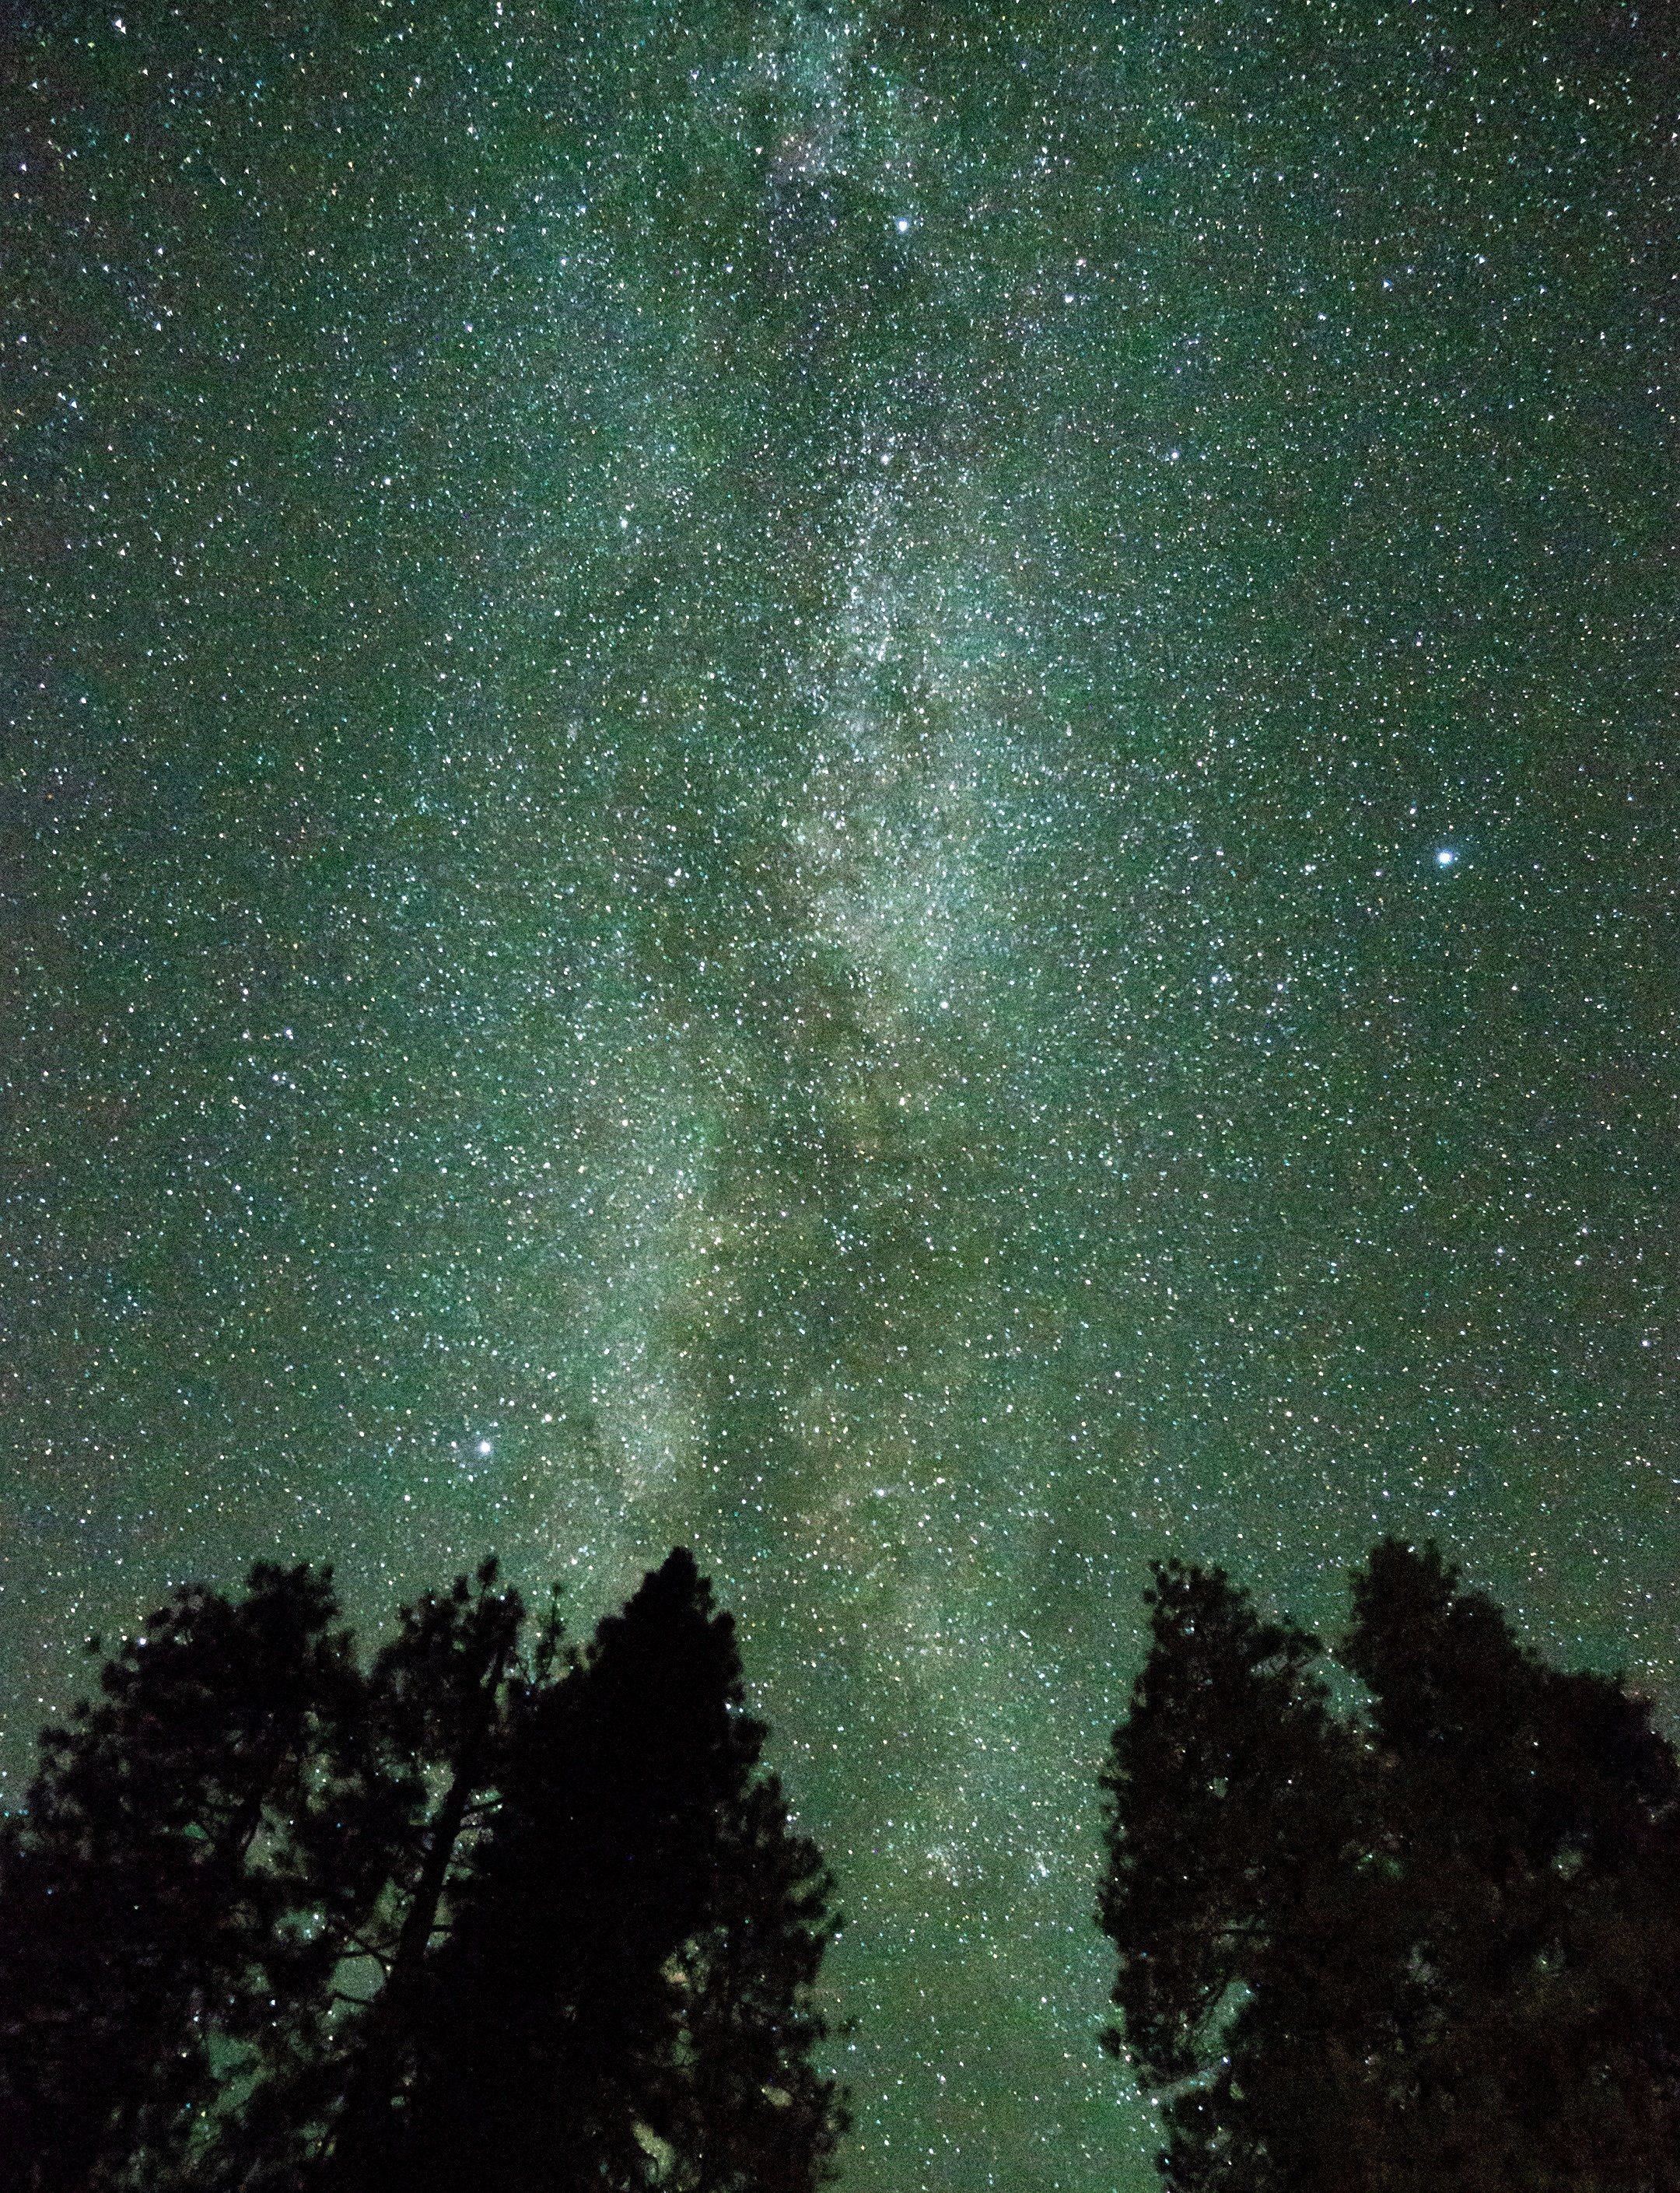 Milky Way in Yosemite Valley, August 30, 2019